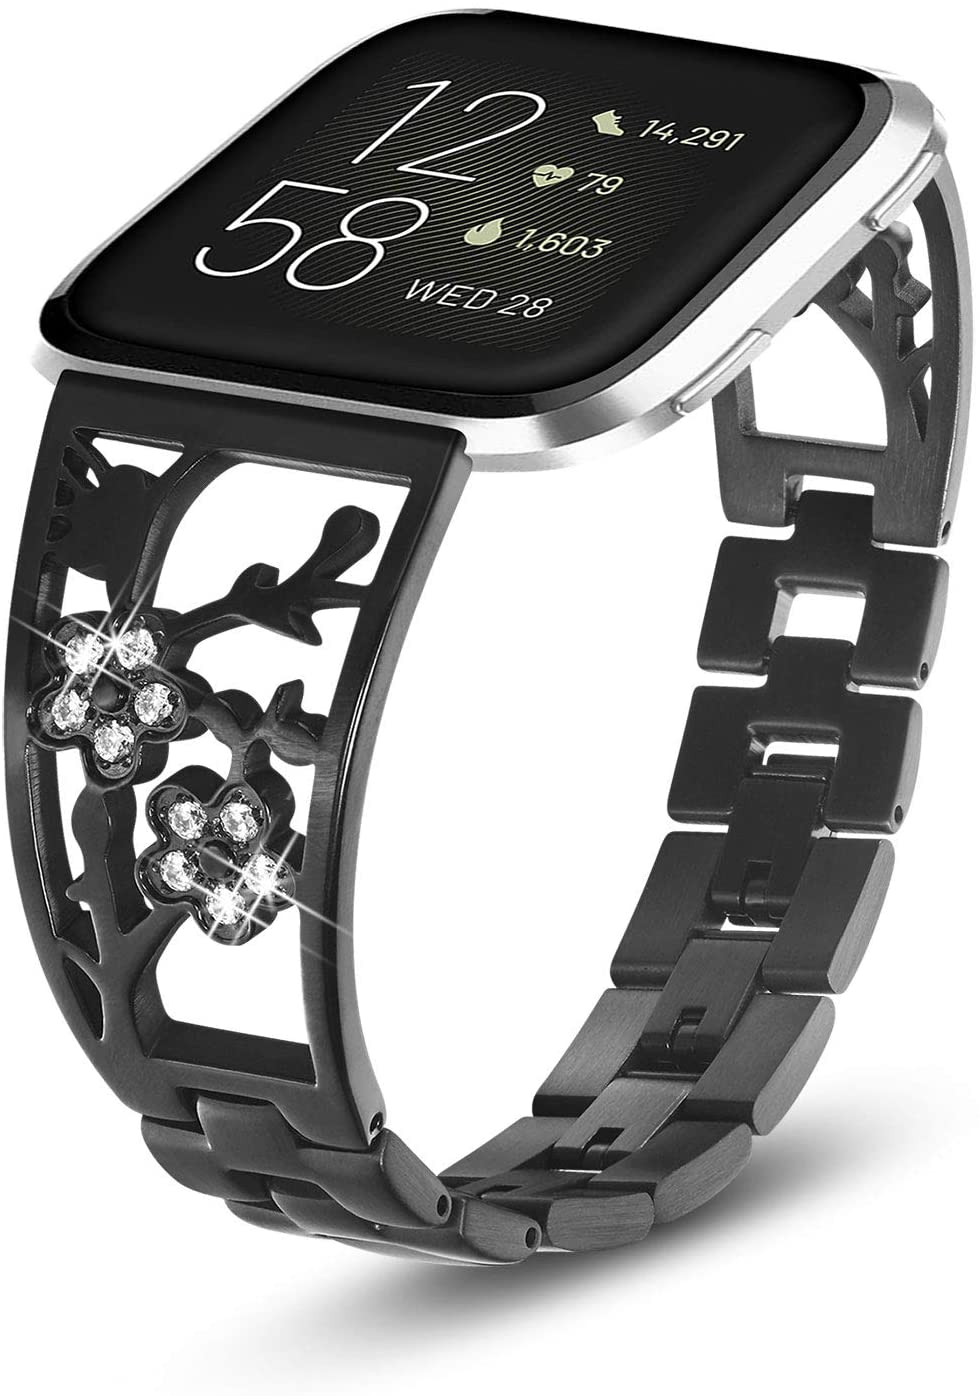 Yoloive Stainless Steel Bands Compatible with Fitbit Versa 2/ Versa Lite/Versa for Women, Bling Luxurious Replacement Bracelet with Rhinestone Metal Smart Fitness Accessories (Black)